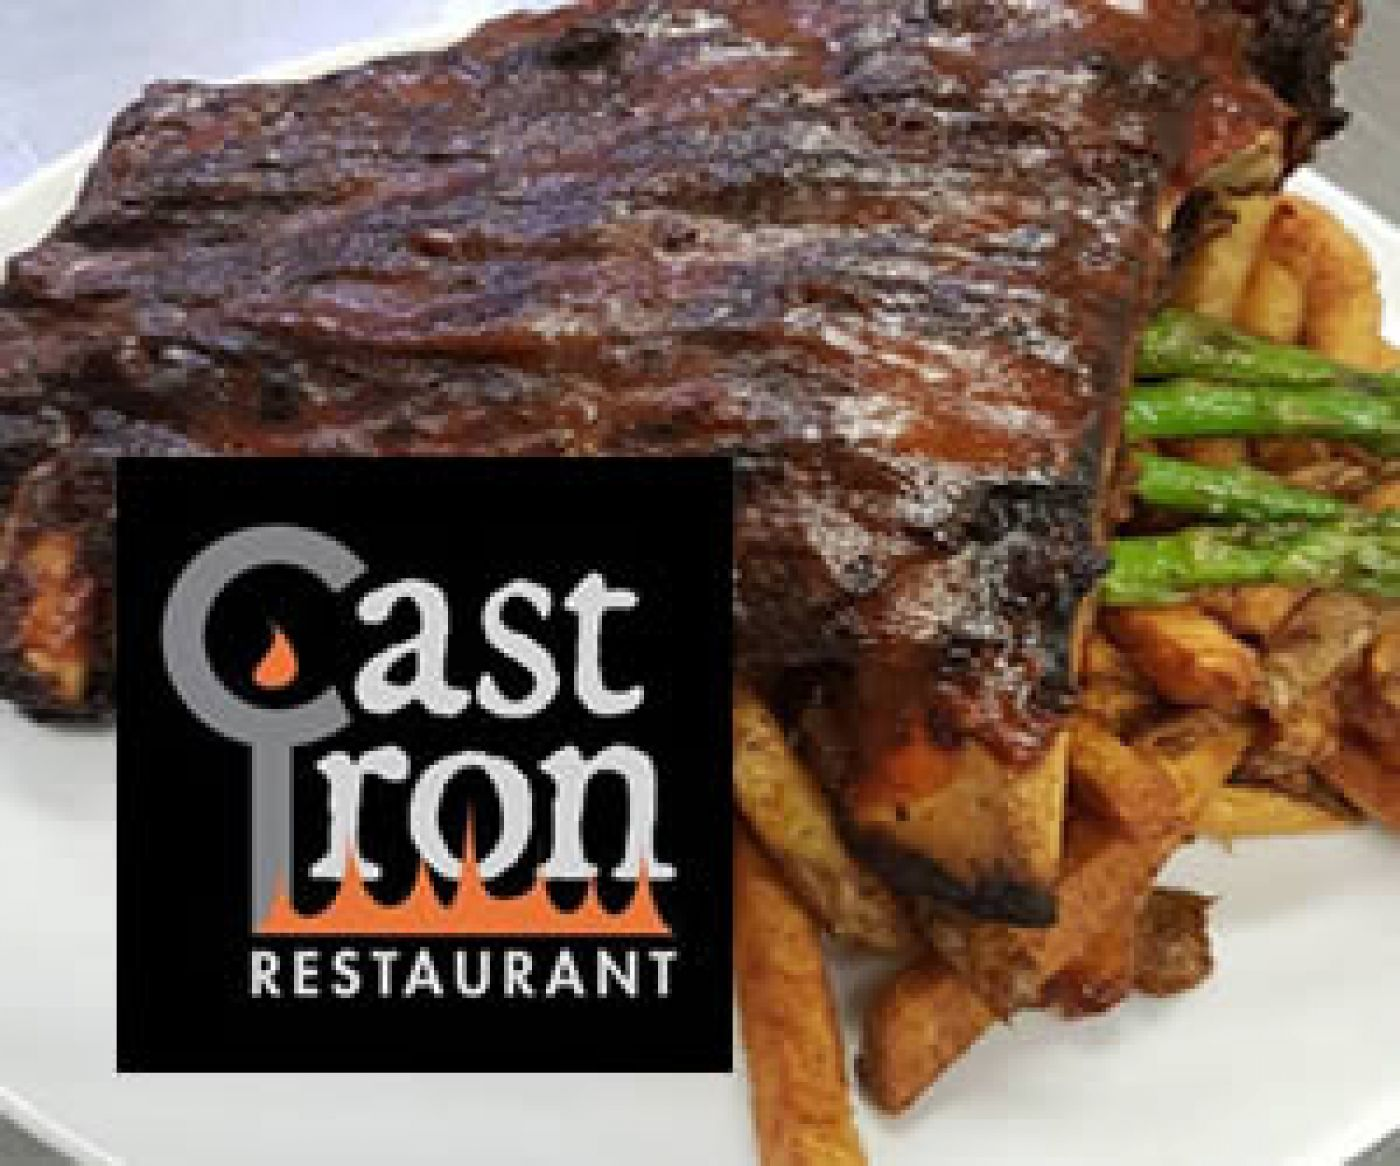 Cast Iron Restaurant